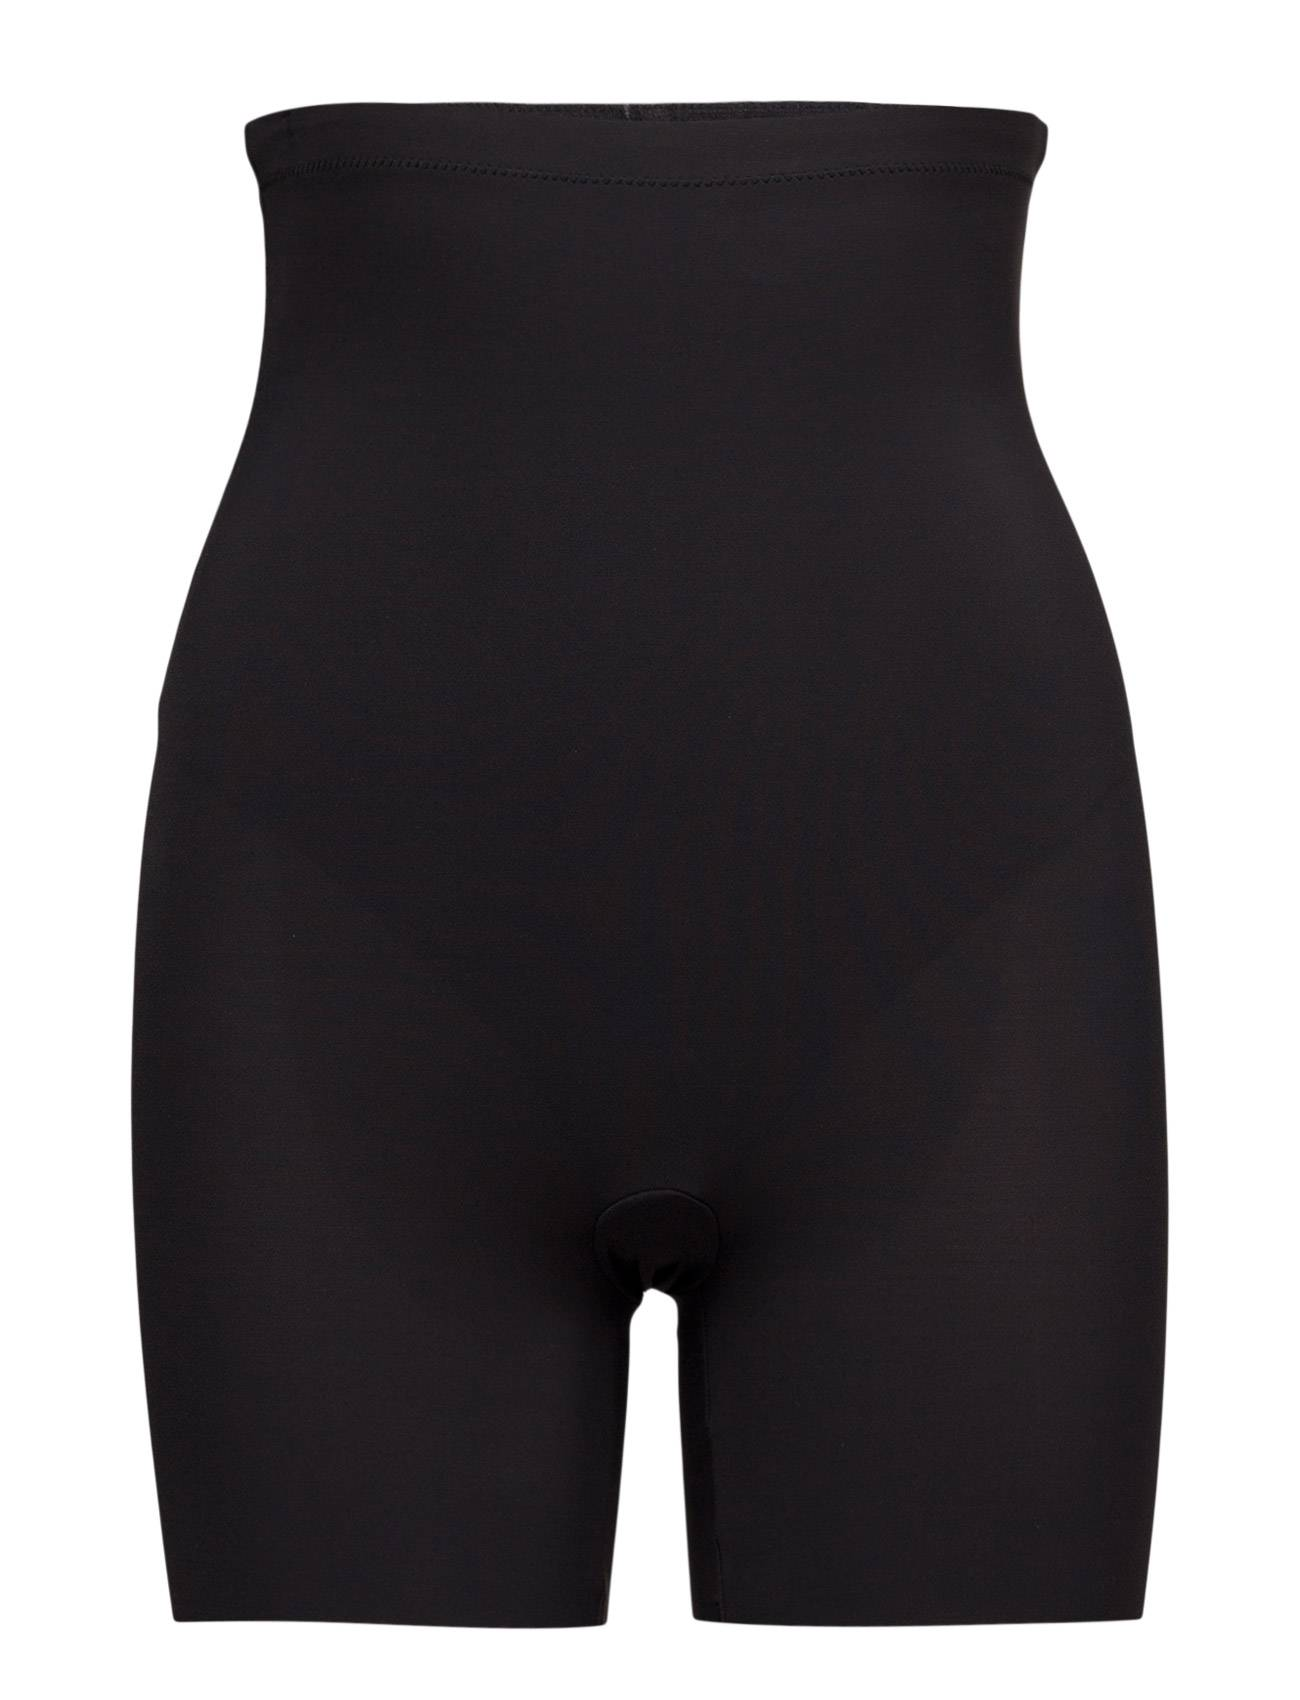 Maidenform Sleek Smoothers